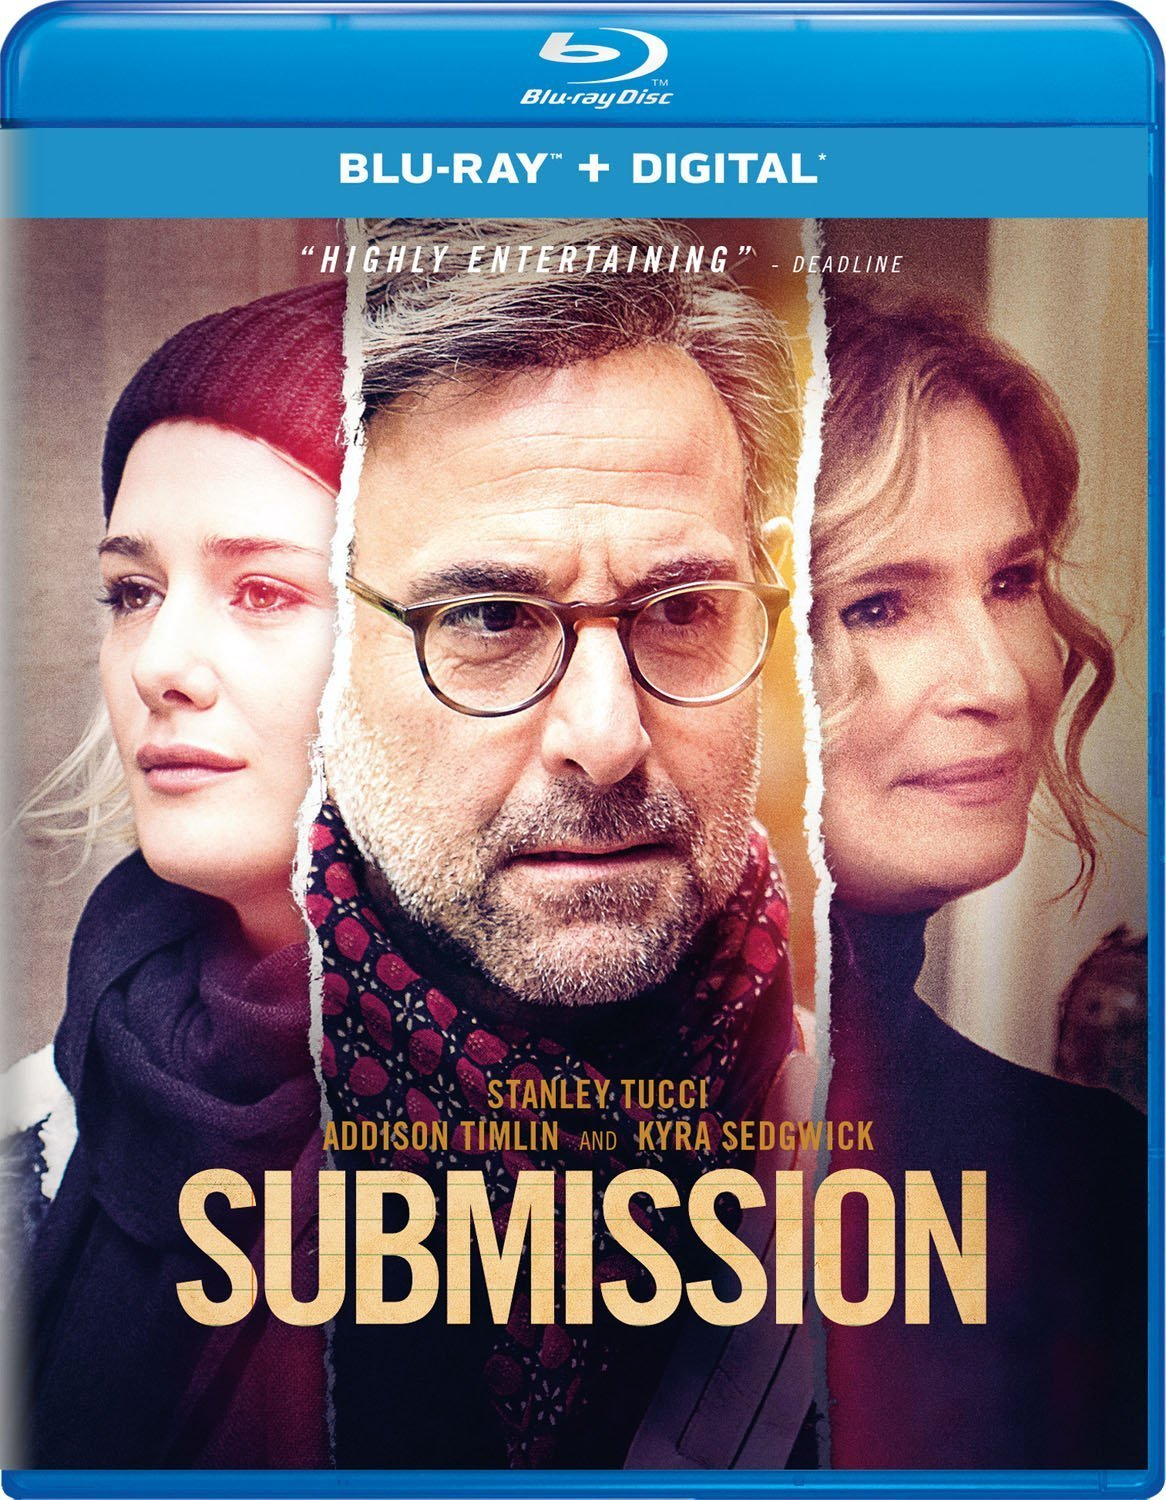 Submission (2018) Blu-ray